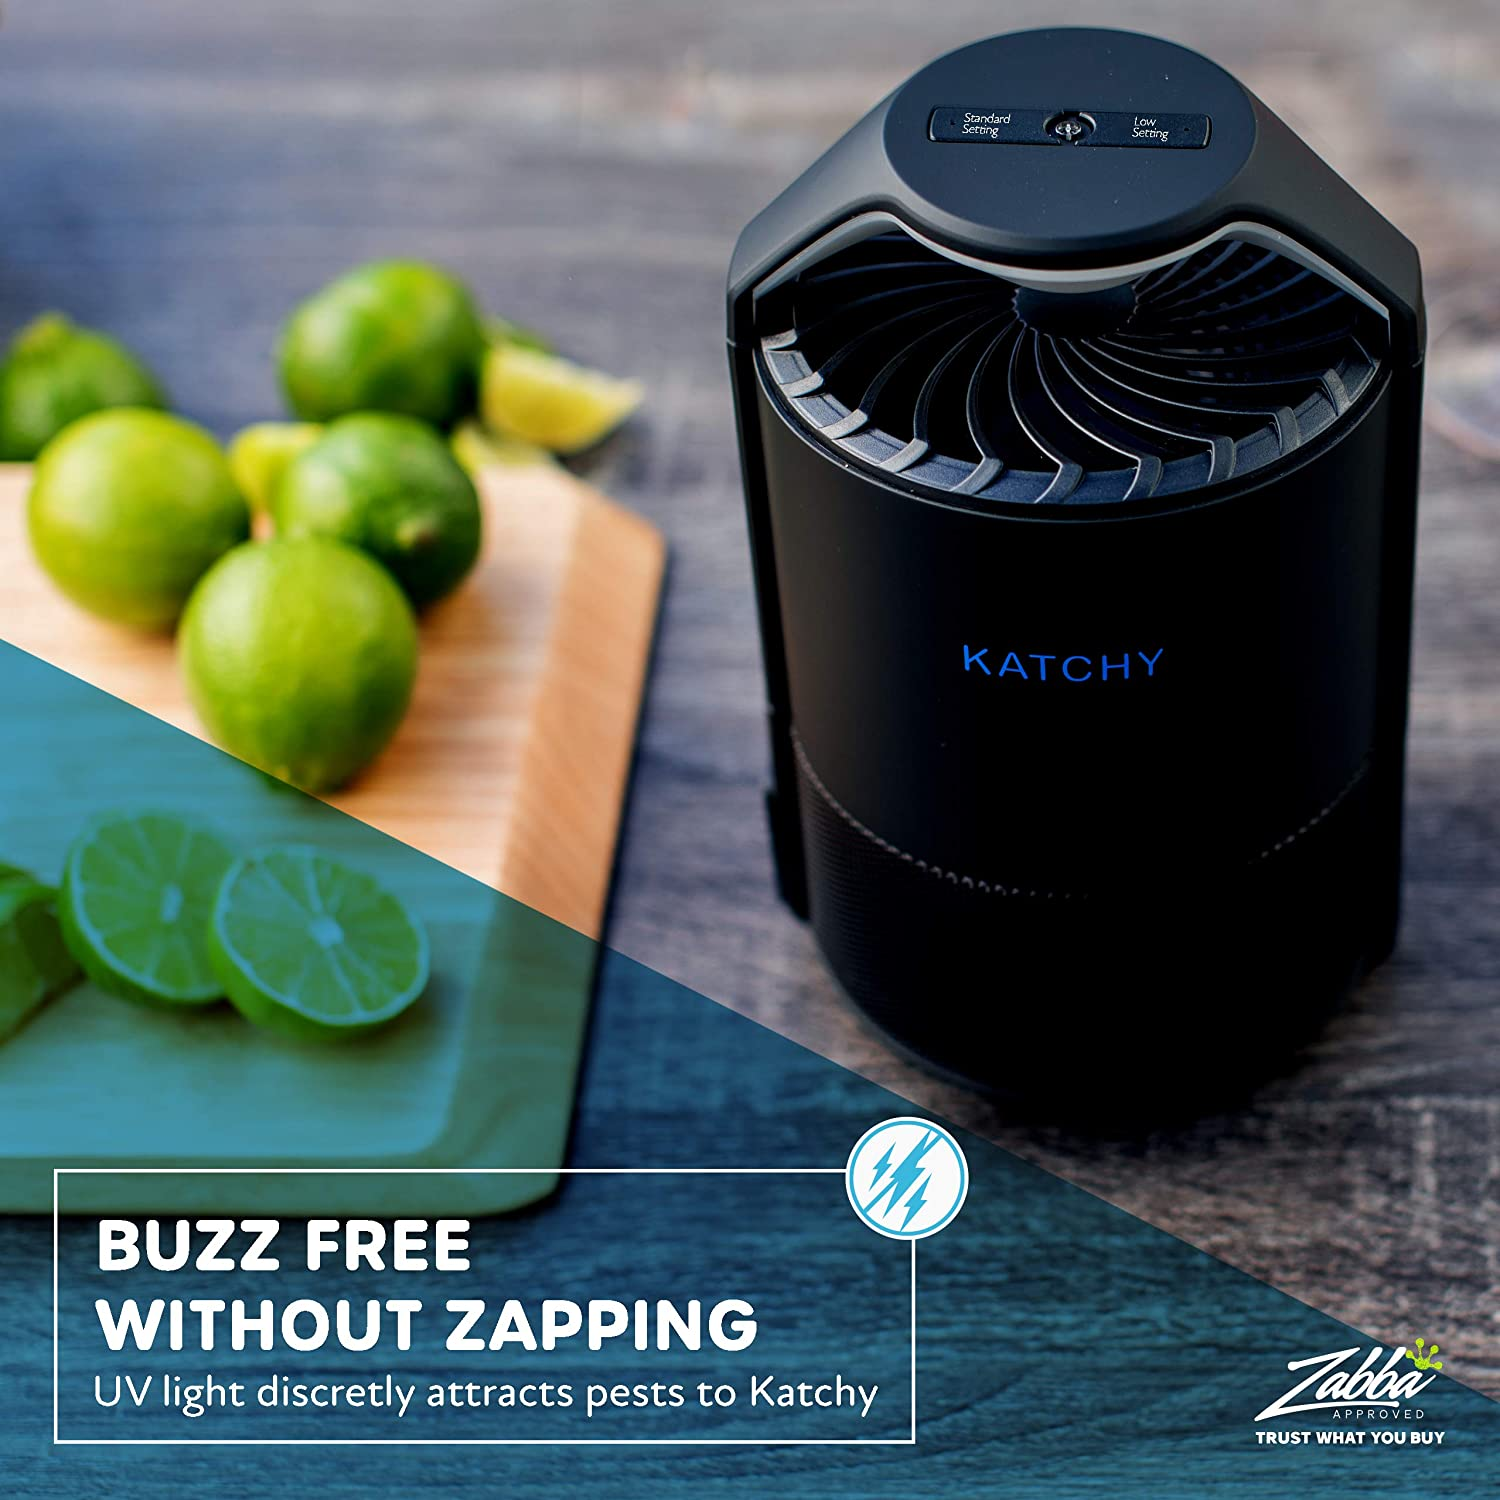 KATCHY Indoor Insect Trap: Bug, Fruit Fly, Gnat, Mosquito Killer - UV Light, Fan, Sticky Glue Boards Trap Even The Tiniest Flying Bugs - No Zapper- (Black) : Garden & Outdoor